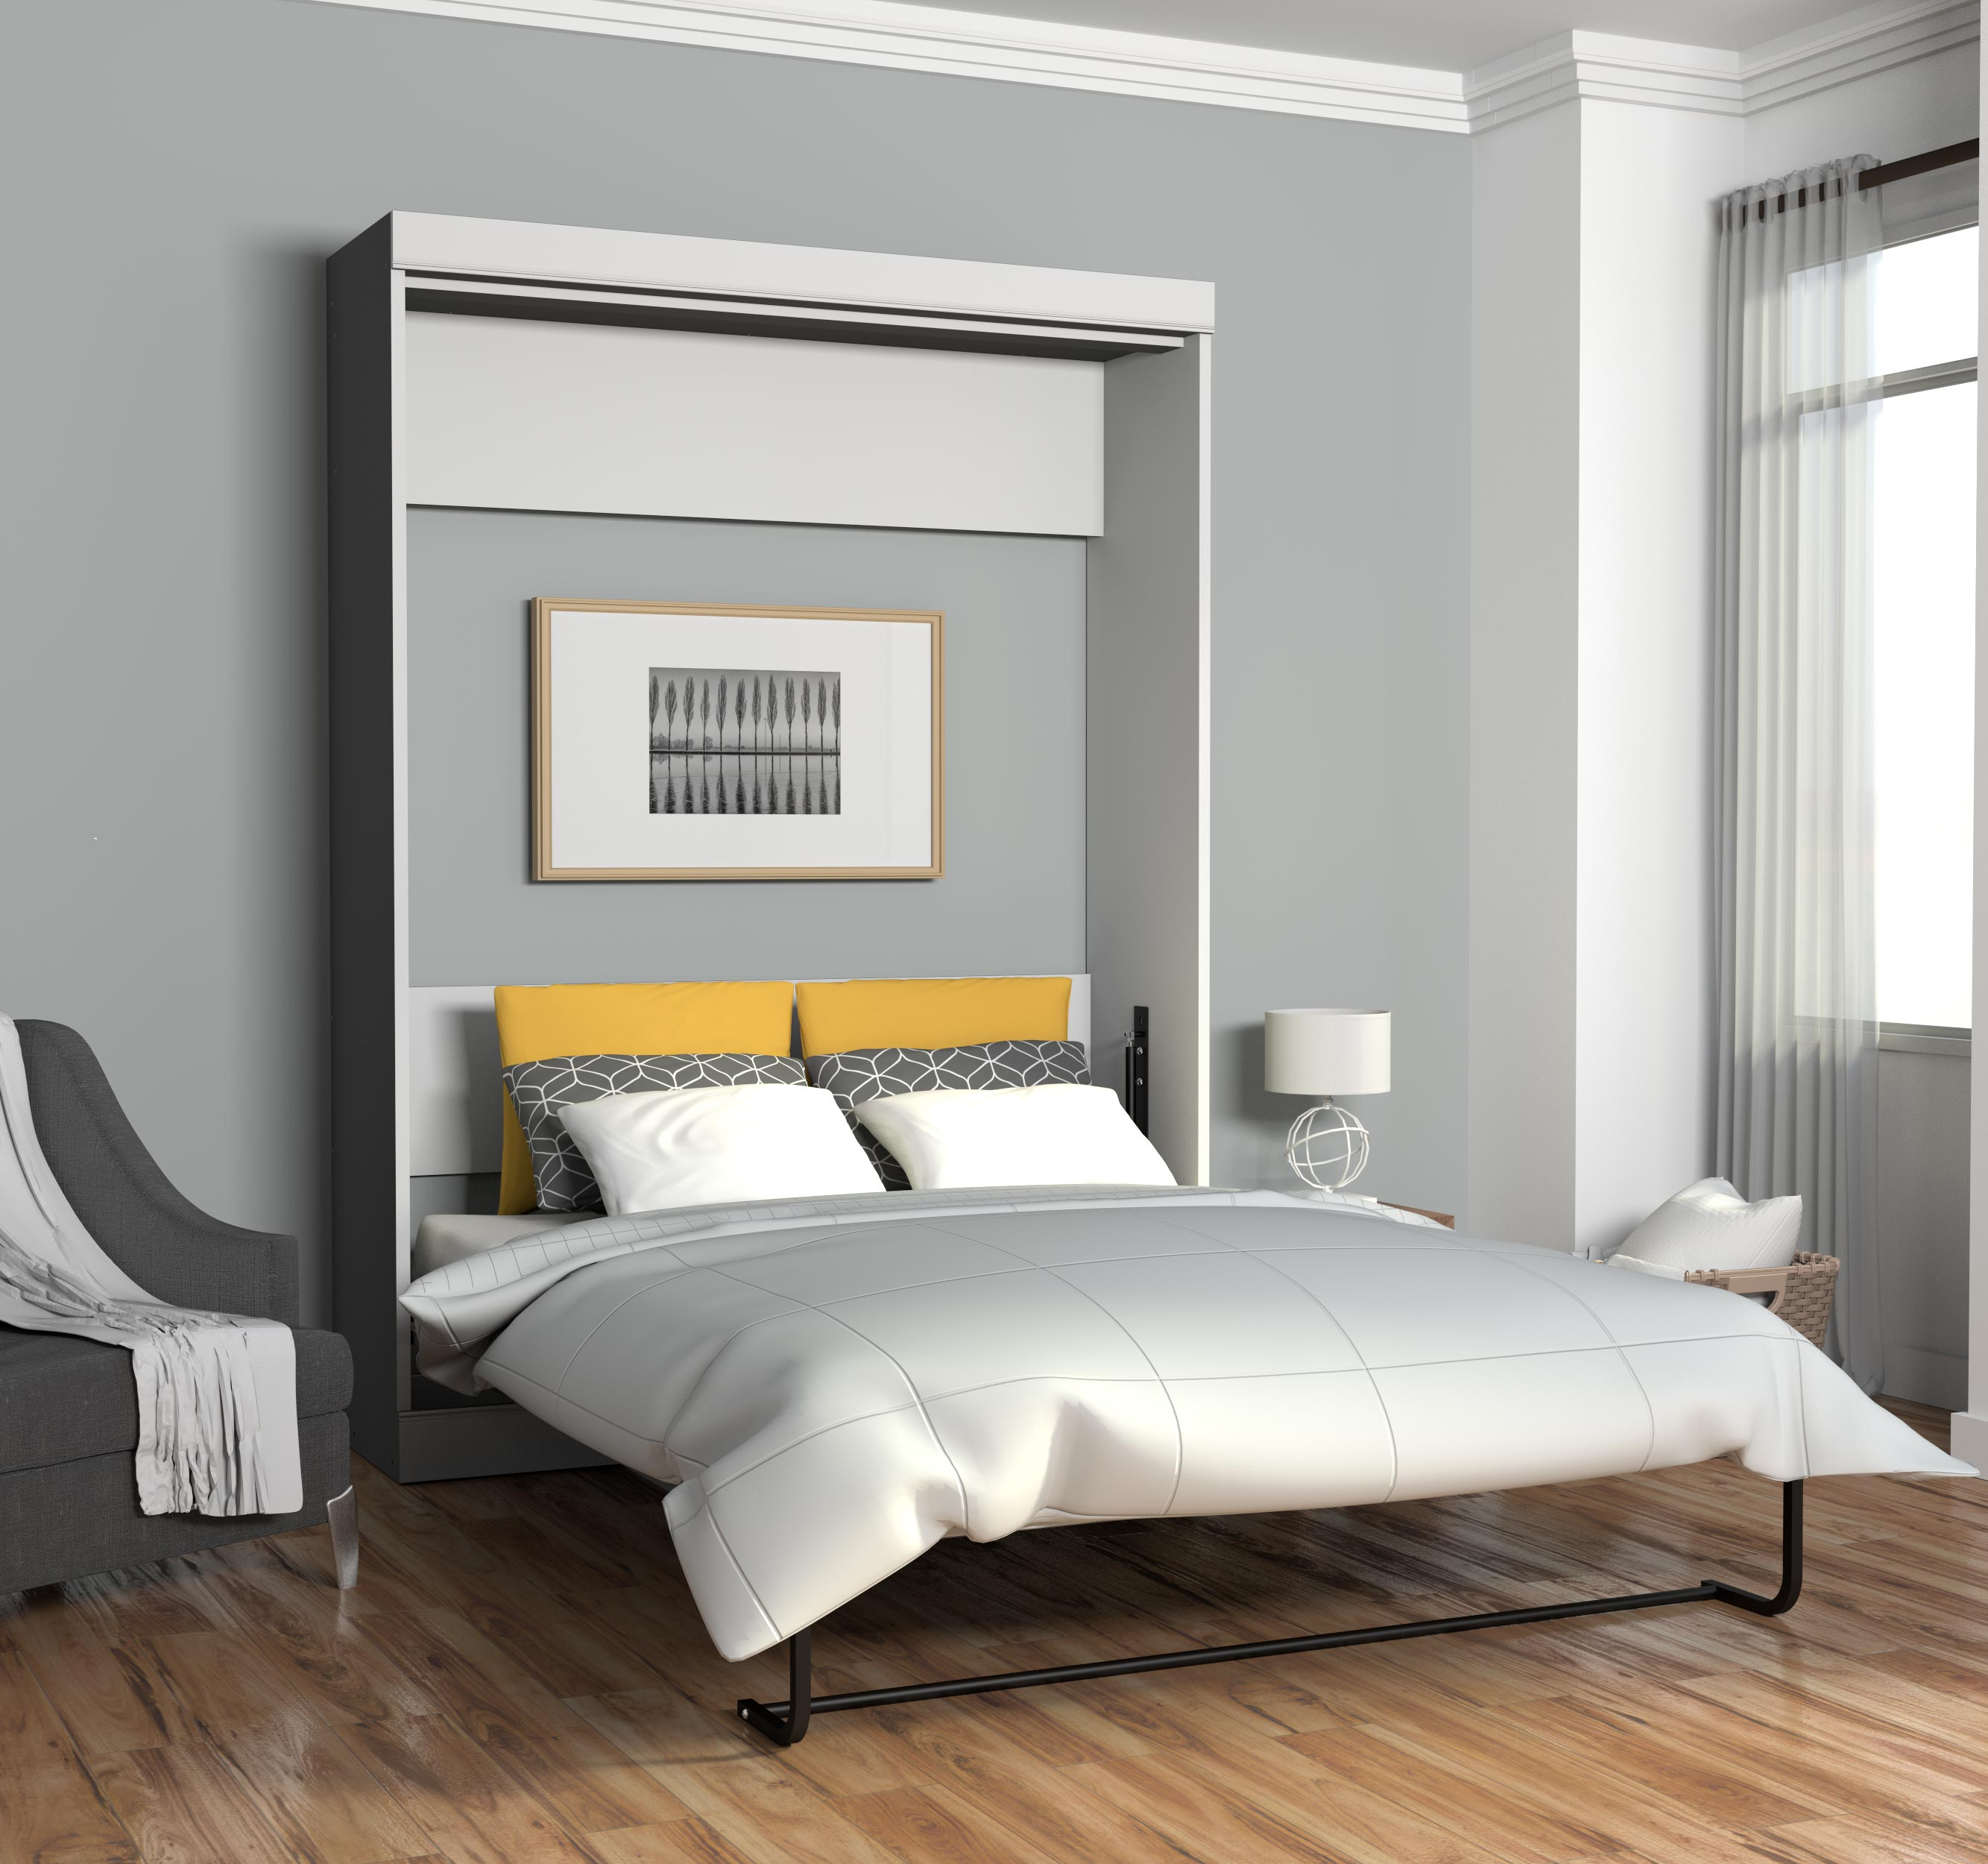 Edge by Bestar Queen Wall bed in White